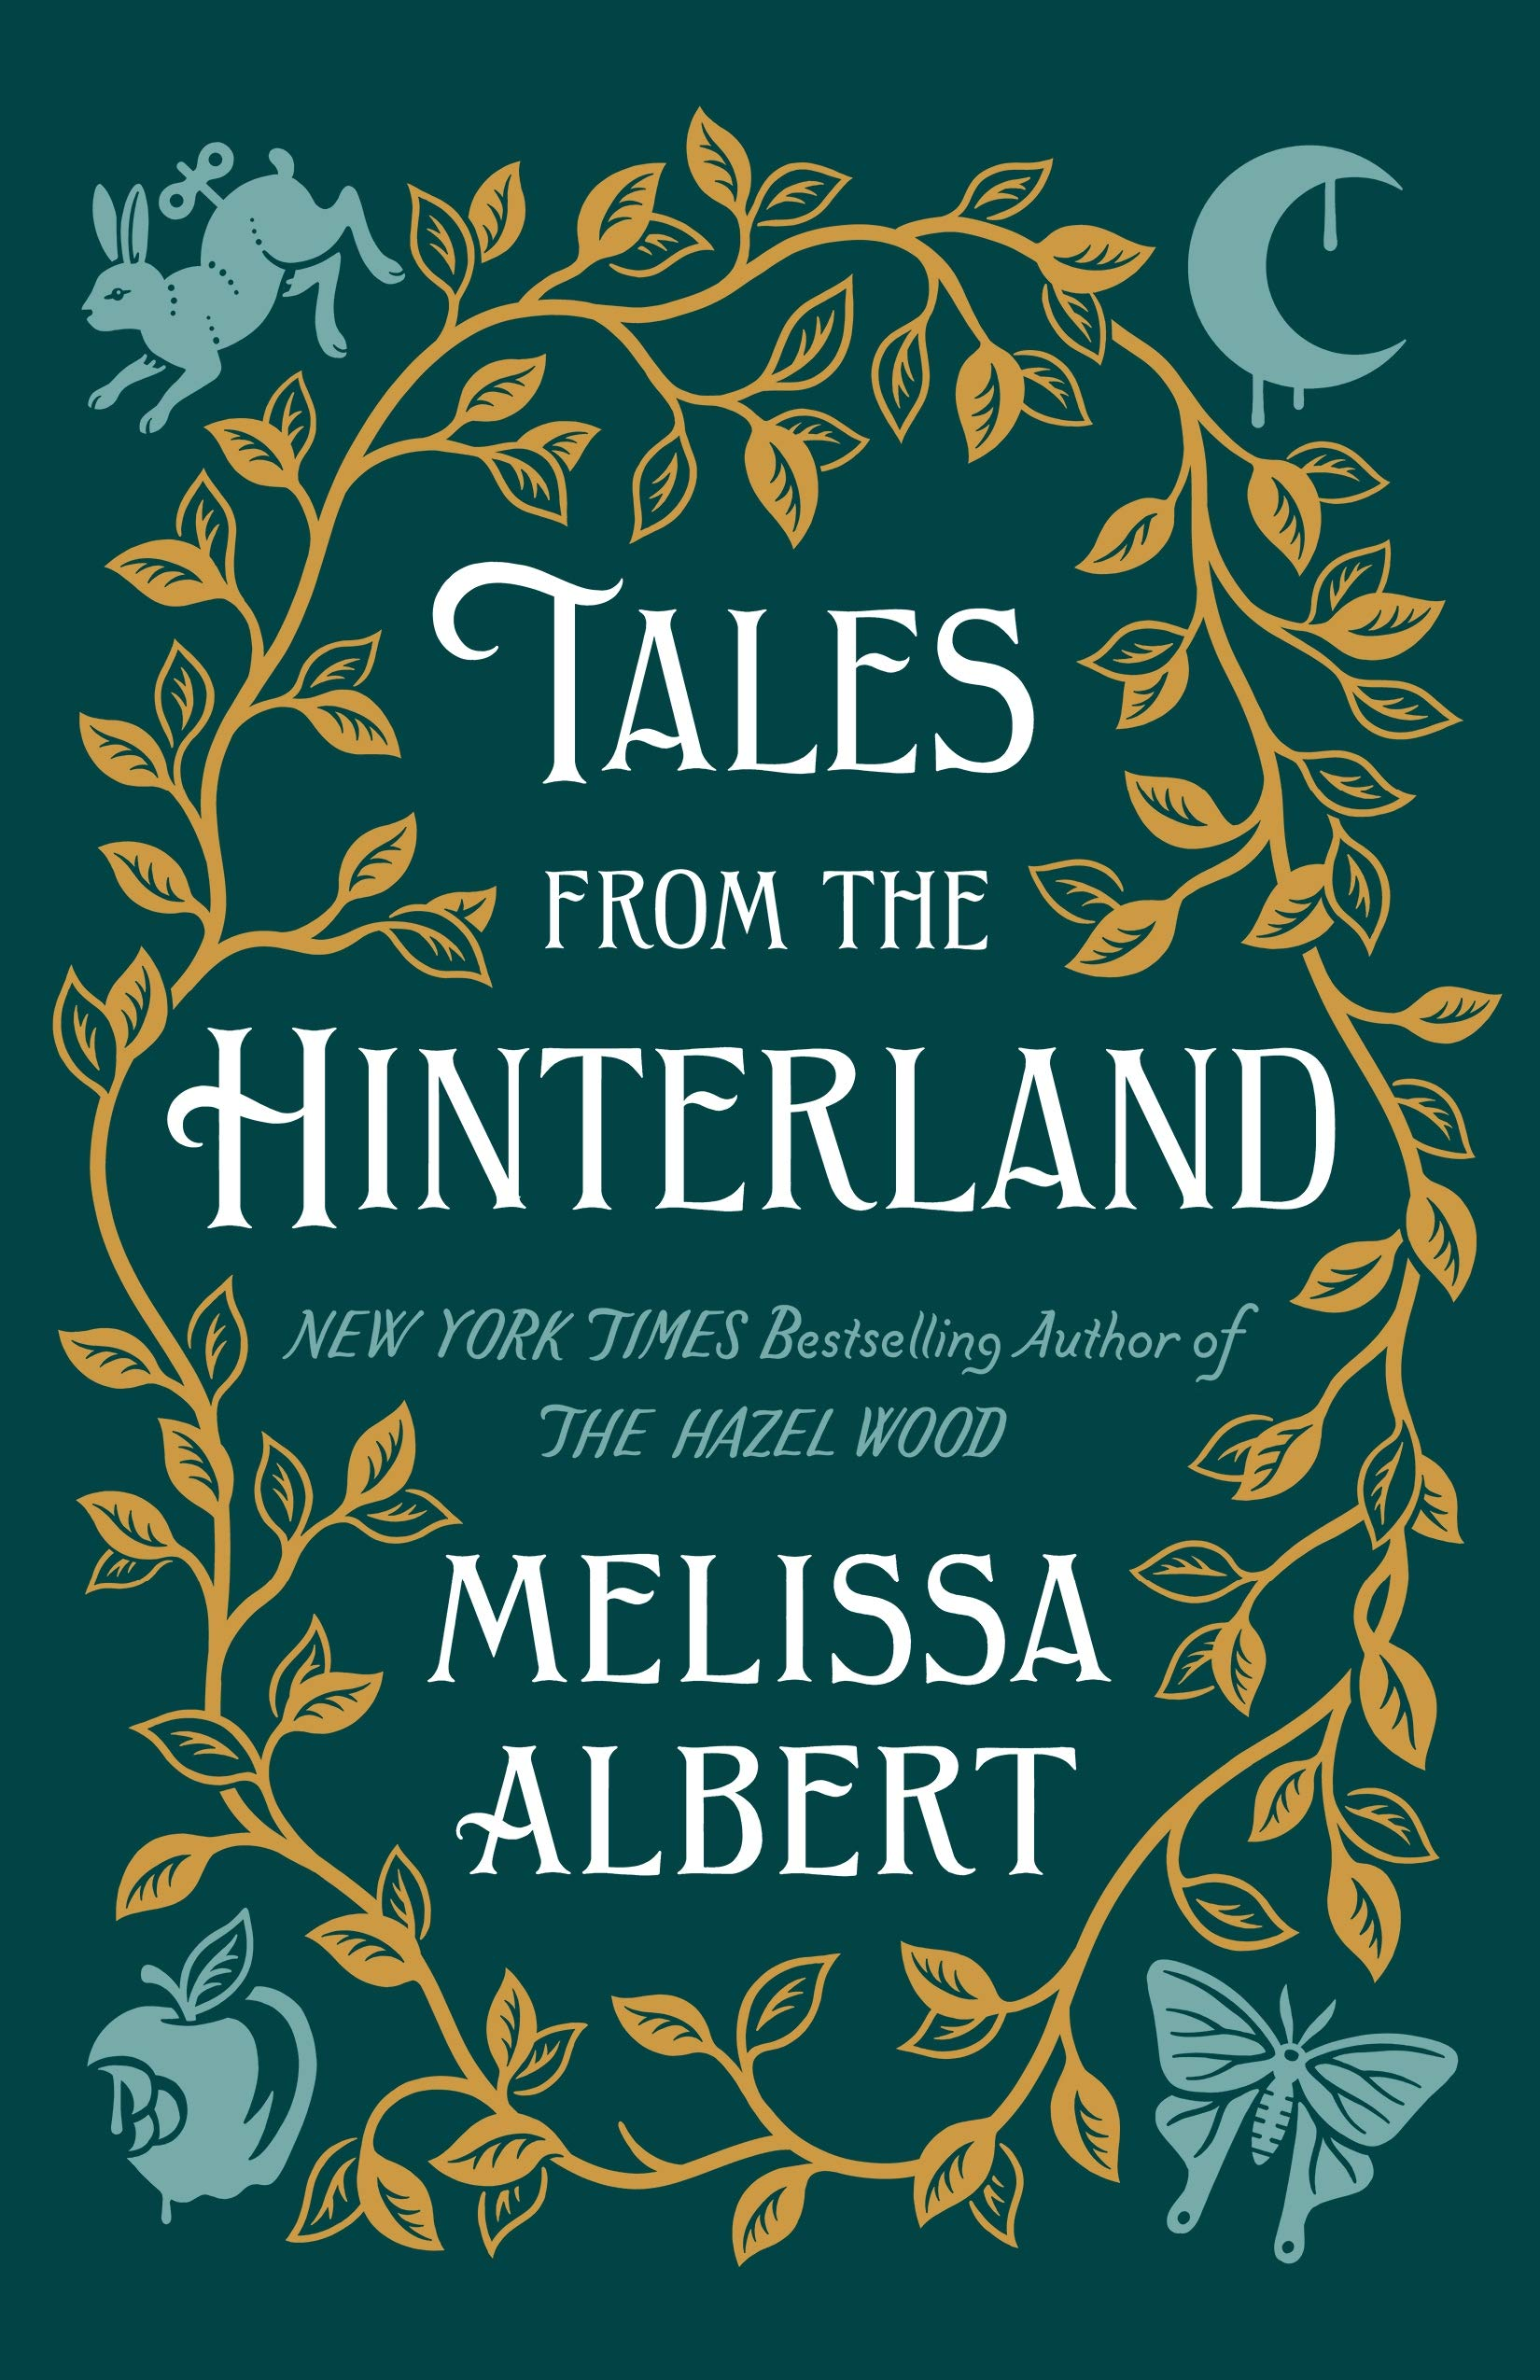 Amazon.com: Tales from the Hinterland (The Hazel Wood) (9781250302724):  Albert, Melissa: Books